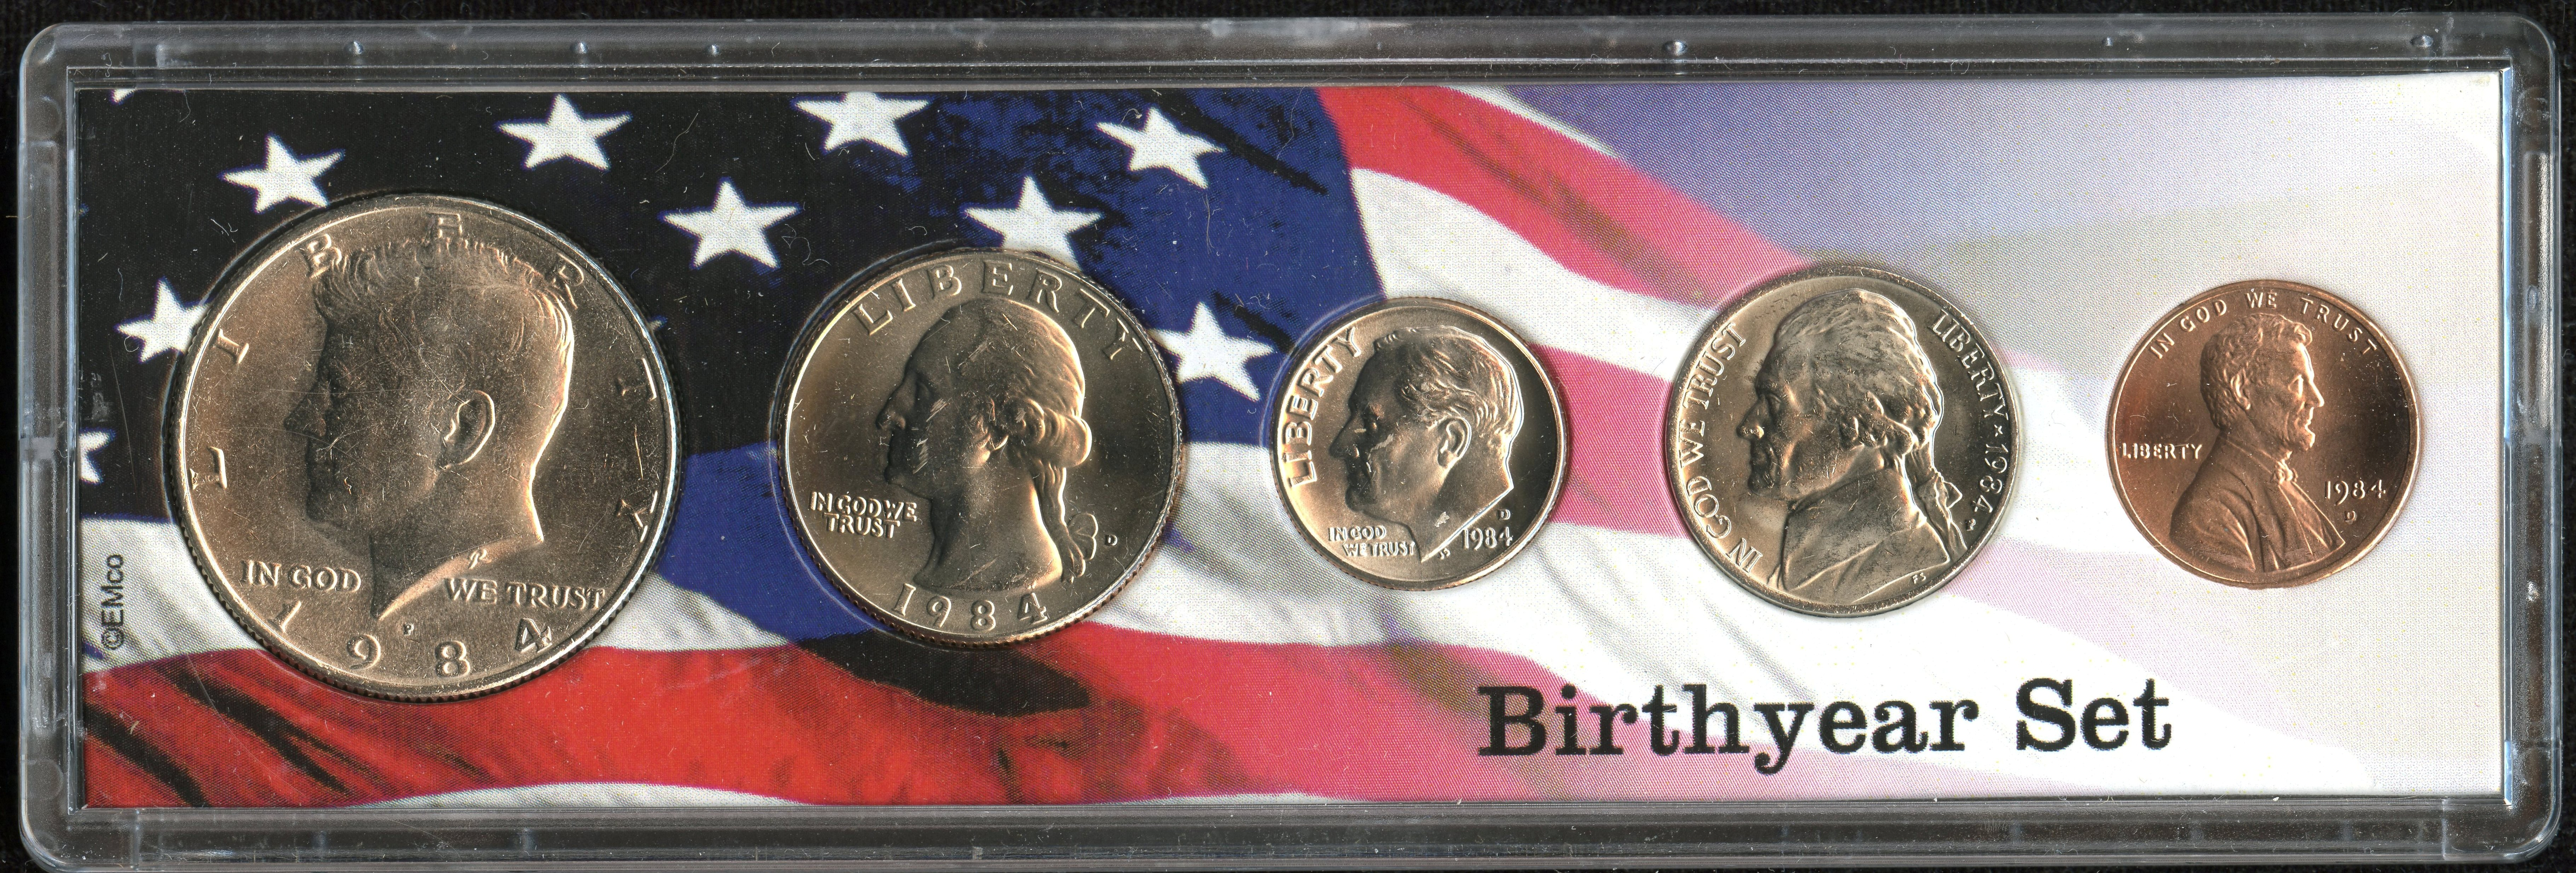 1984 Birth Year Coin Set in American Flag Holder 5 Coin Set